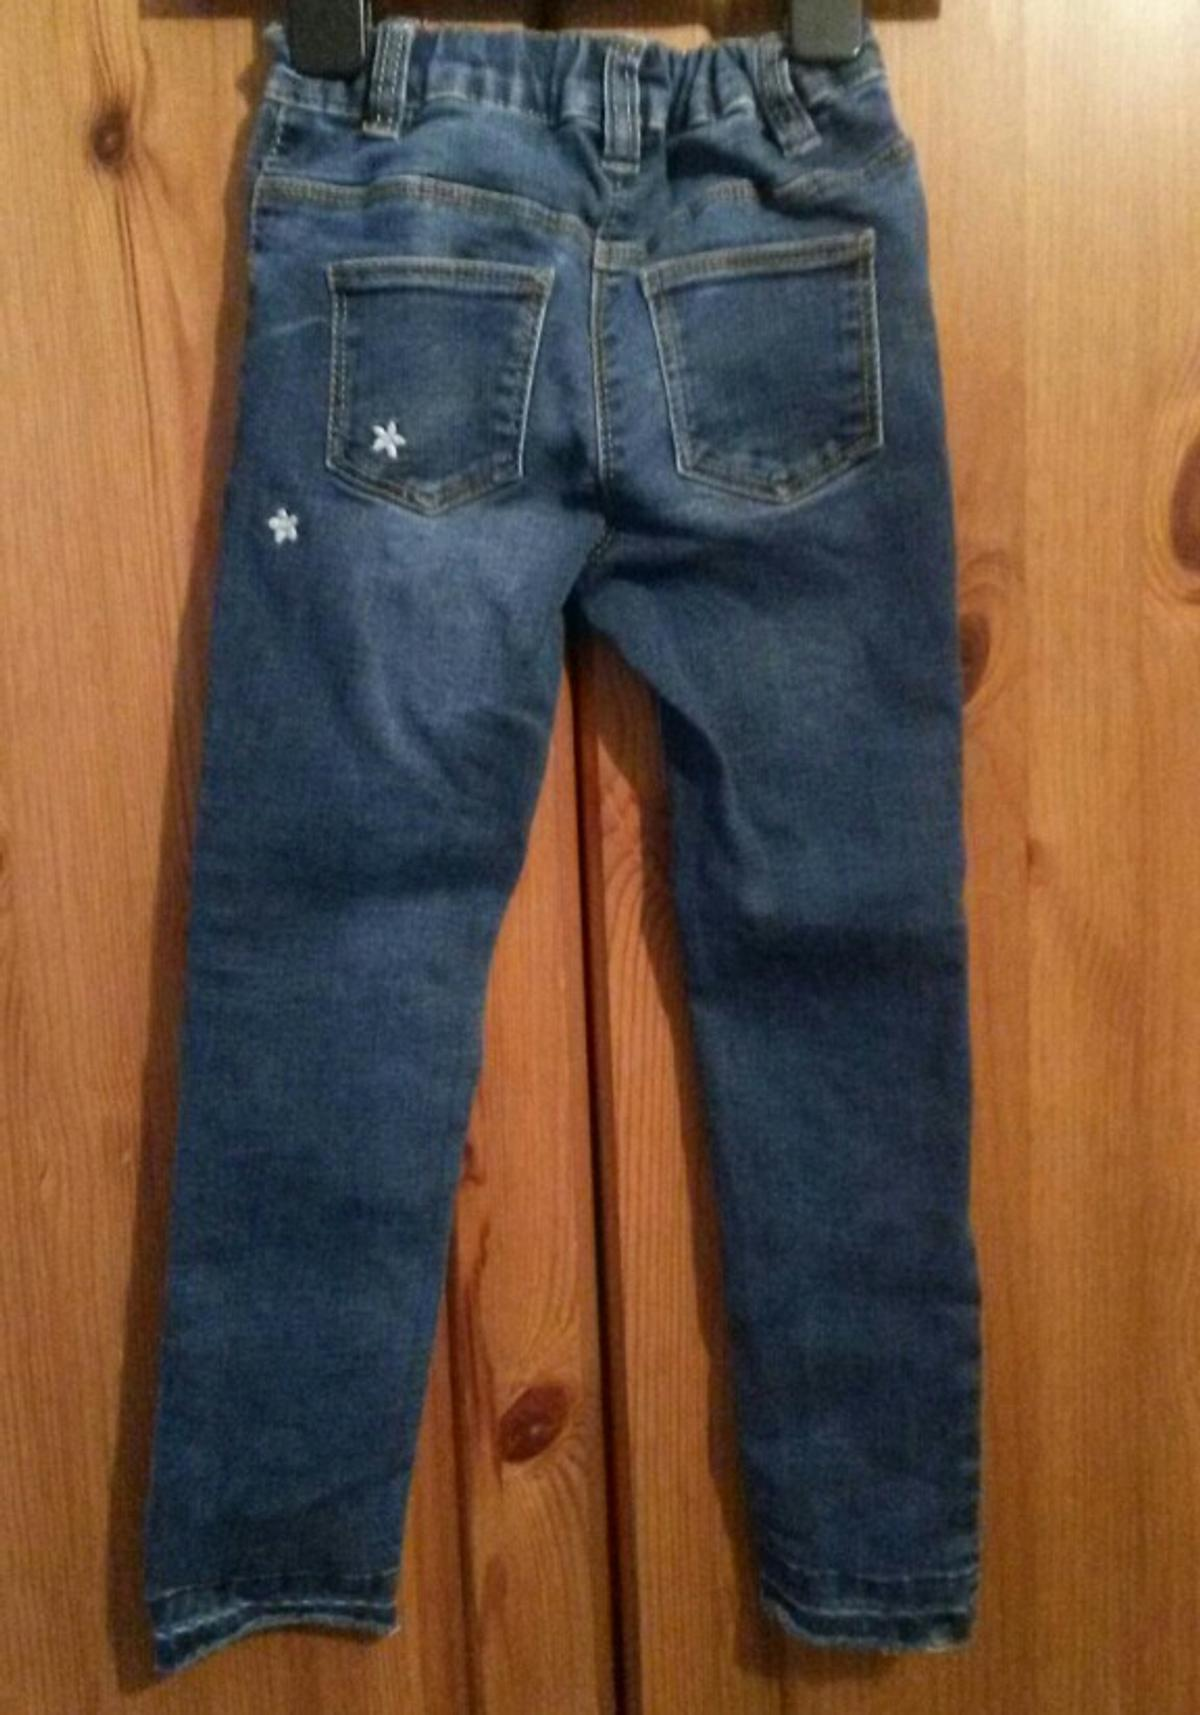 Stretch elasticated waist jeans from next size 4/5 g.c pontefract area